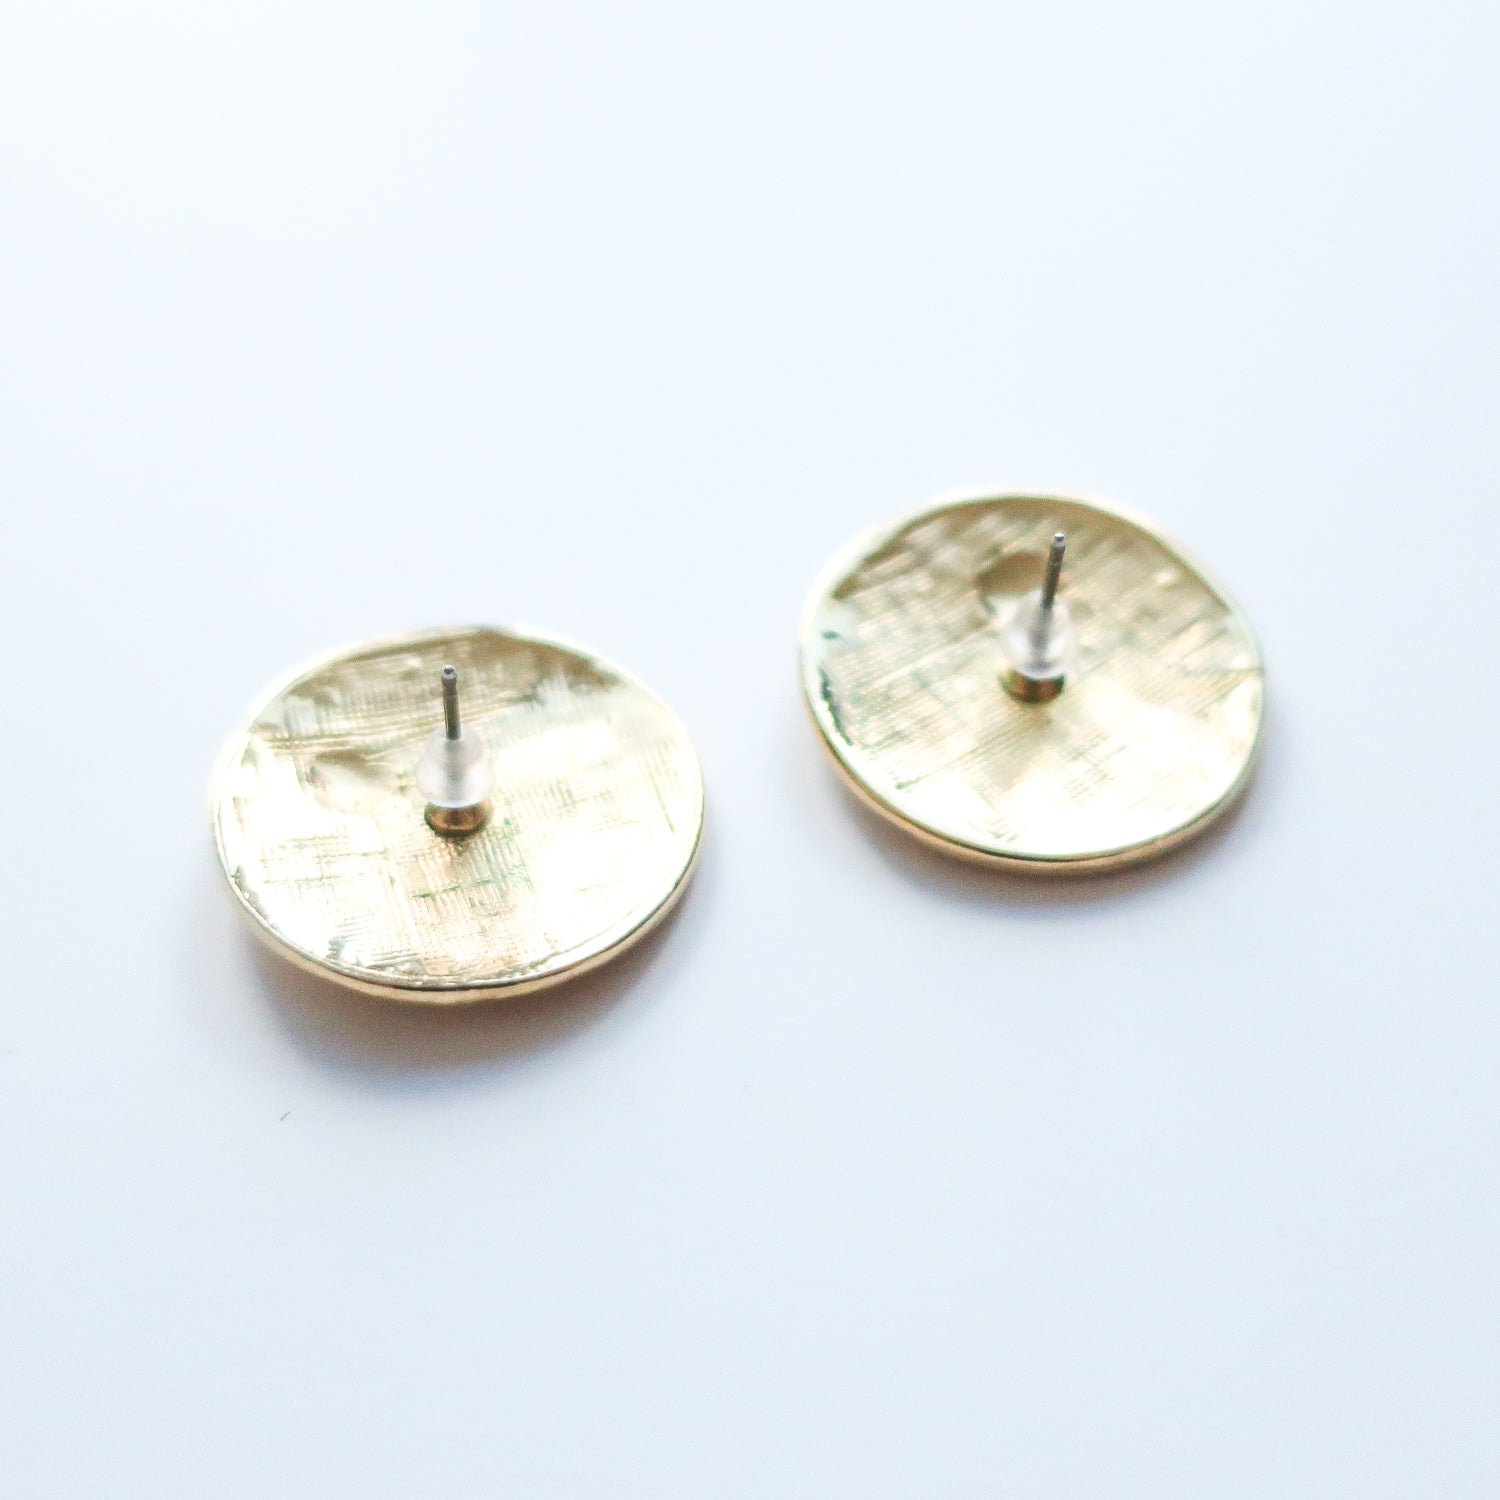 "Second Room Vintage Clothing. Vintage gold tone round studs with triangle, circle and arrow shapes in red and green. Earrings are 1"" round. Free North American shipping on all orders."